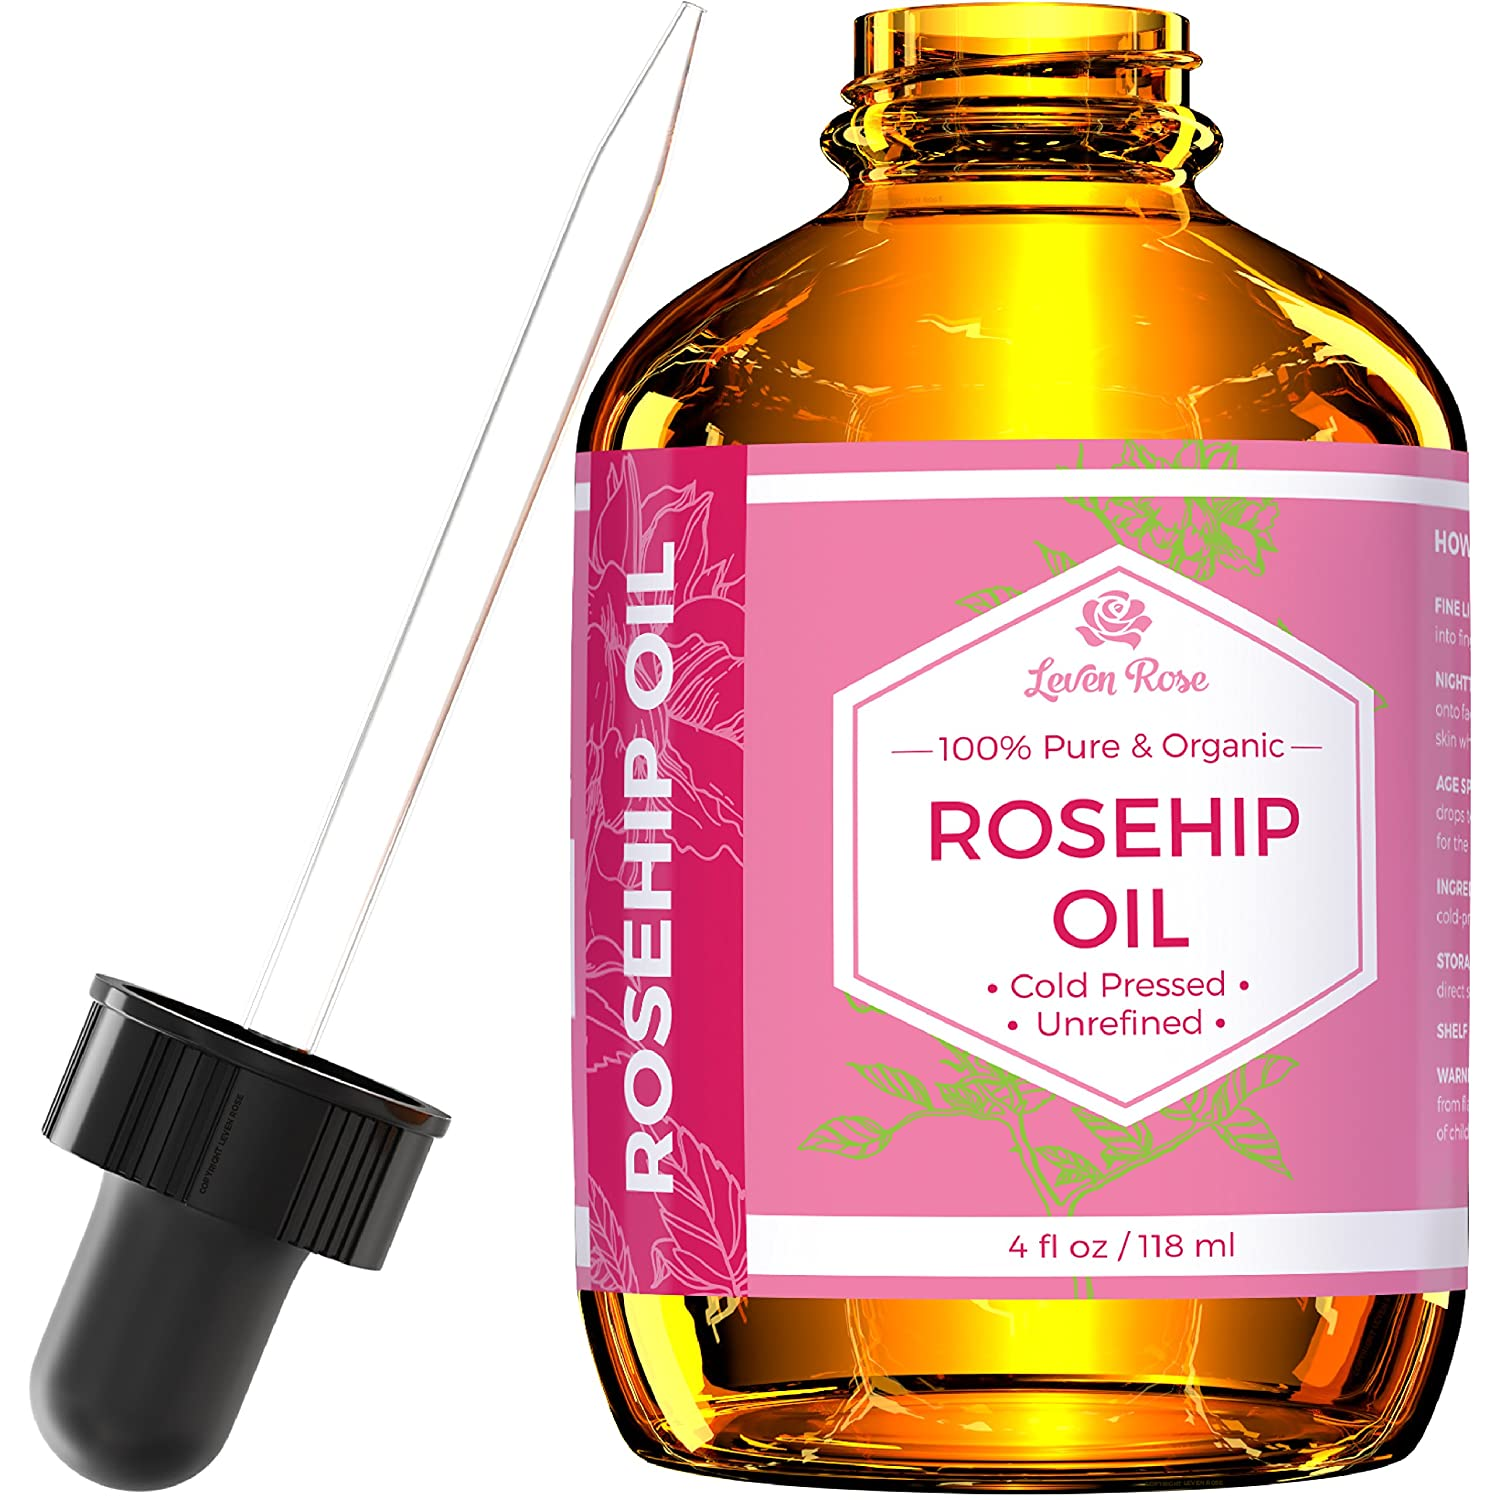 Rosehip Seed Oil from Leven Rose